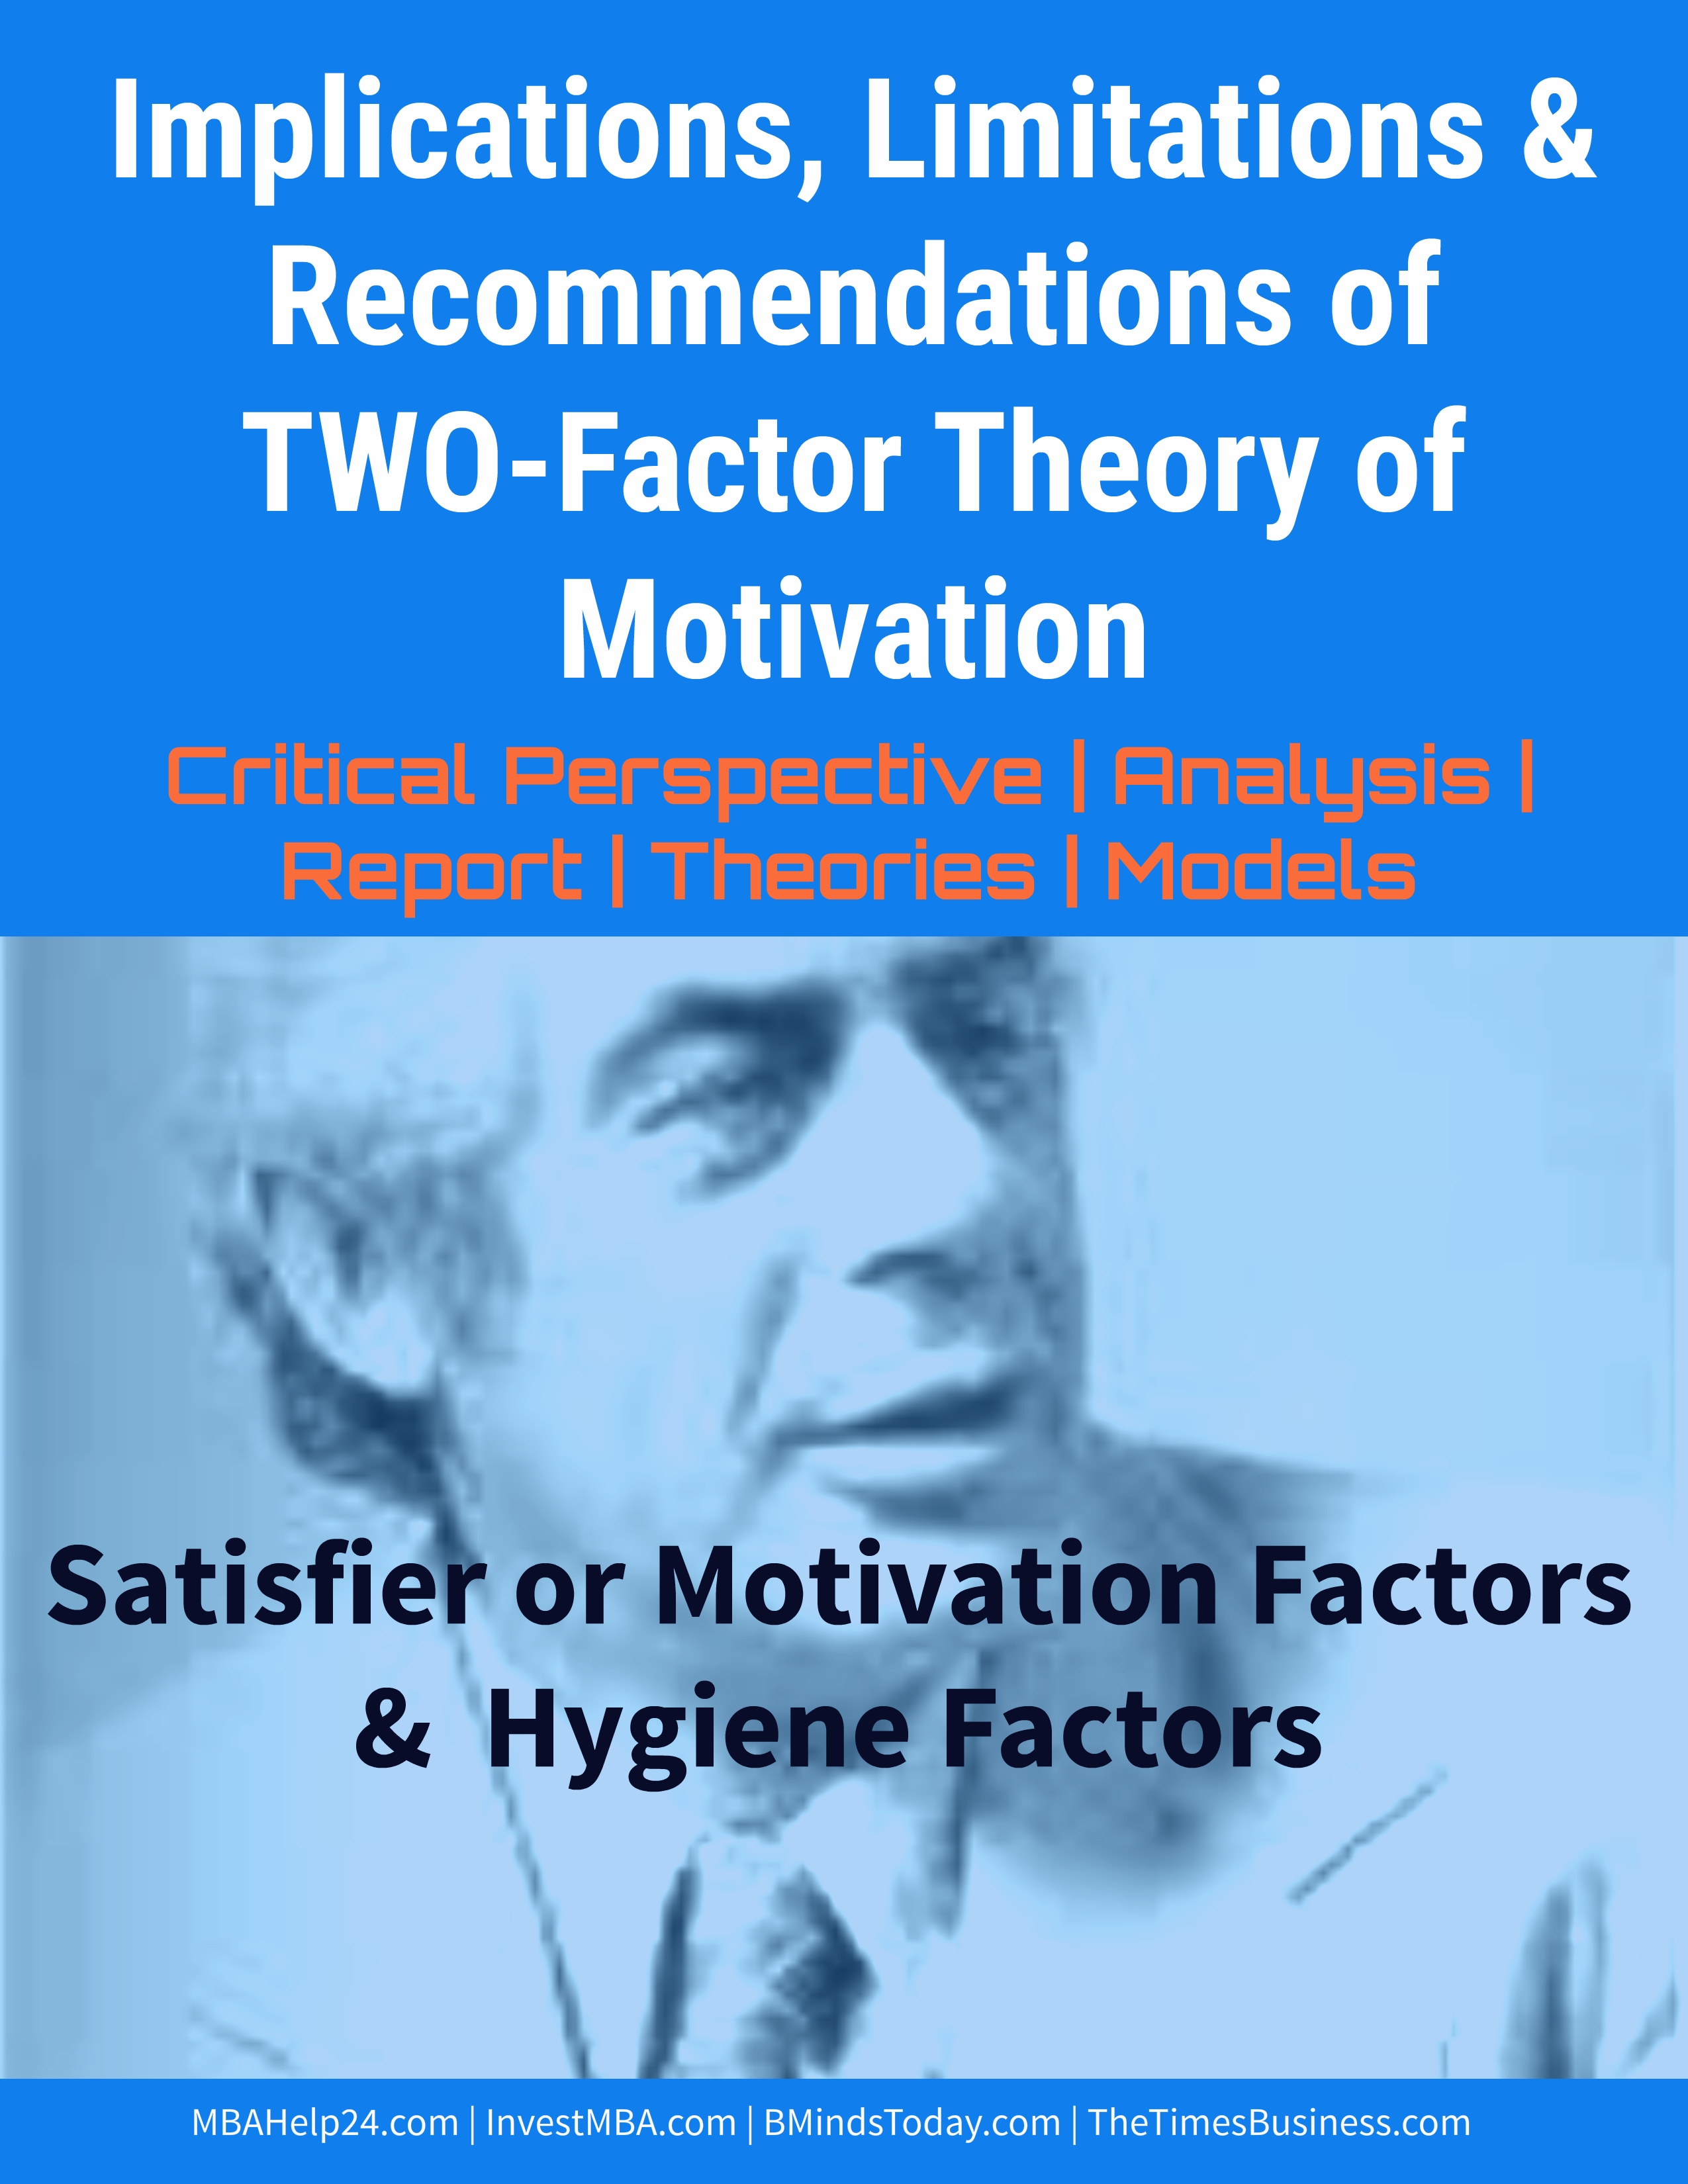 Implications, Limitations & Recommendations of TWO-Factor Theory of Motivation motivation Implications, Limitations & Suggestions of TWO-Factor Theory of Motivation Two factor theory of motivation limtations